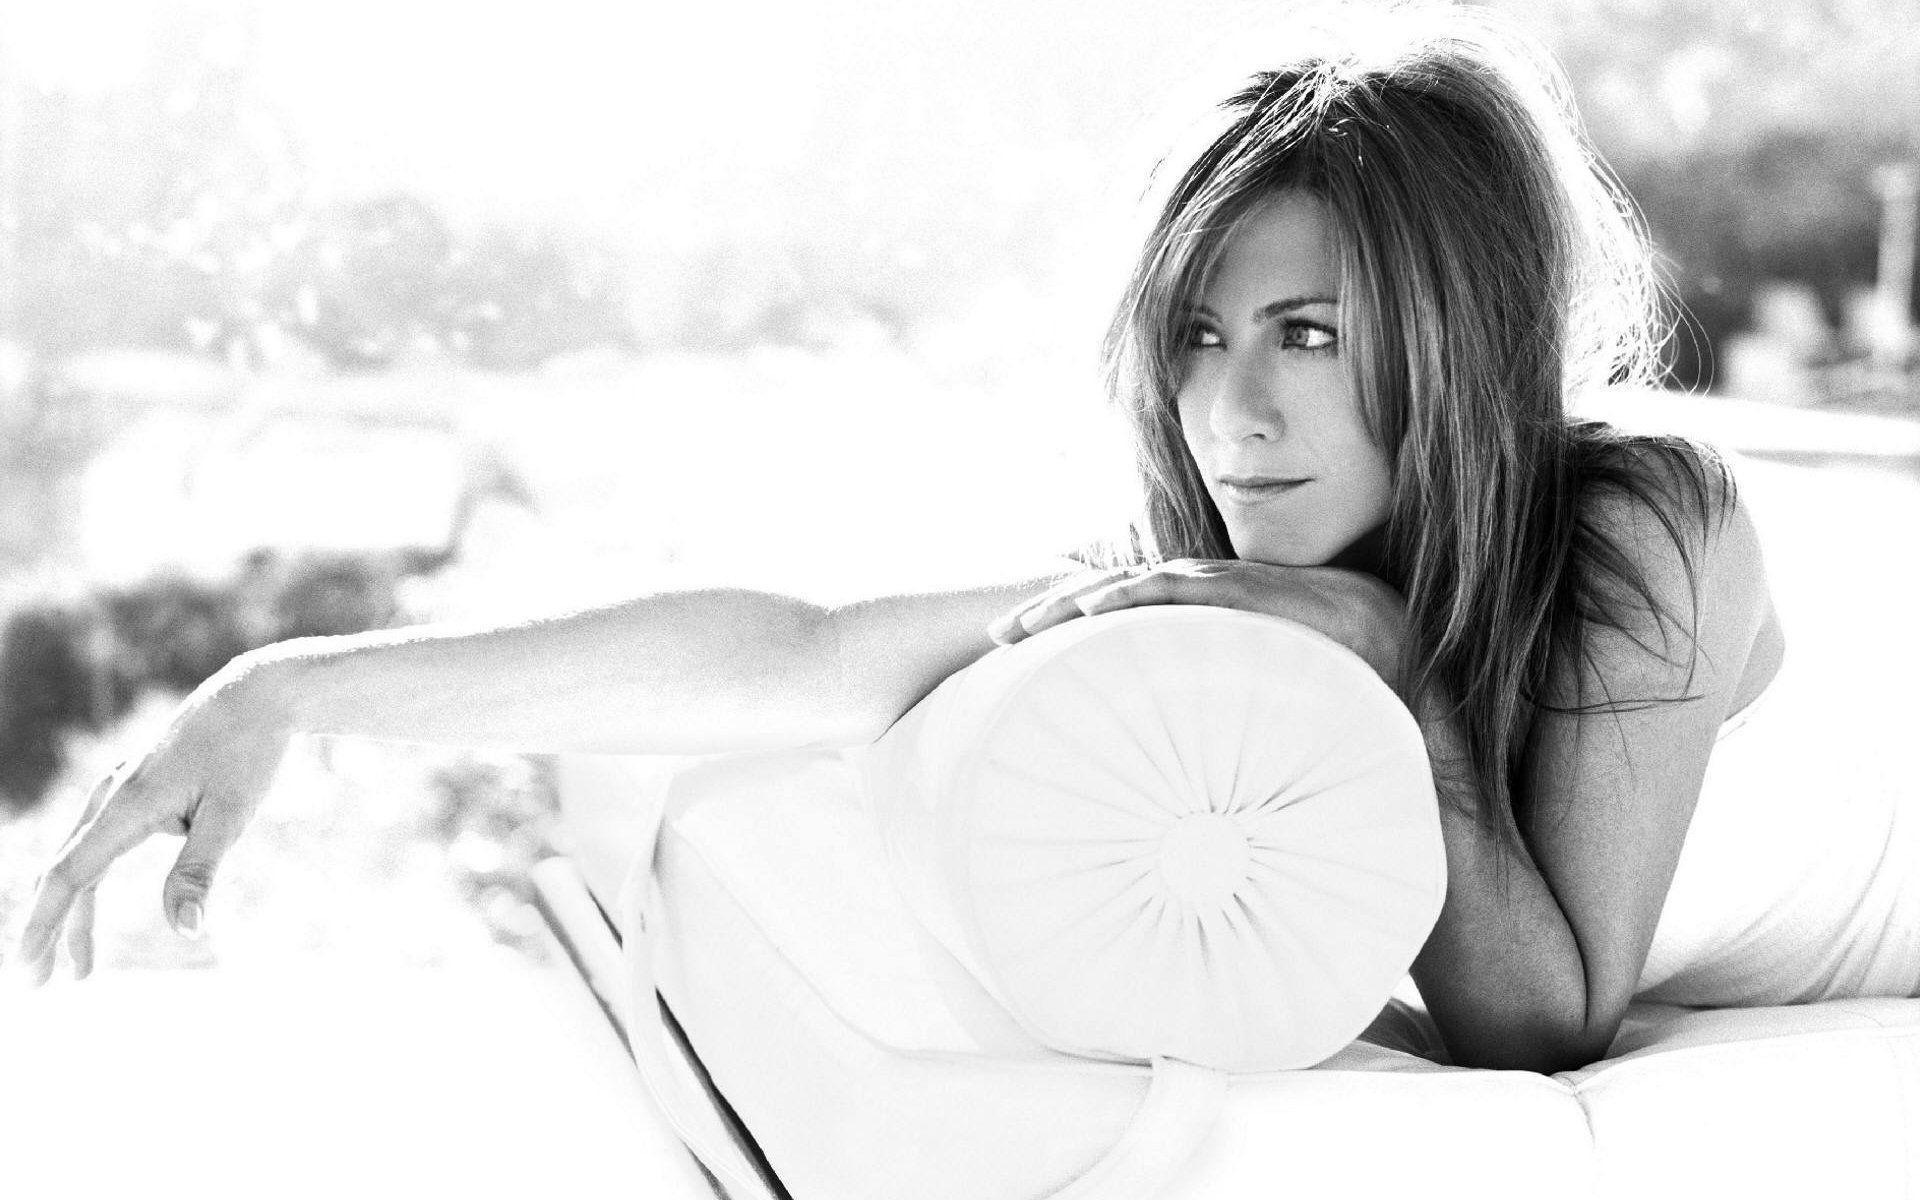 Jennifer Aniston HD Desktop Wallpapers | 7wallpapers.net